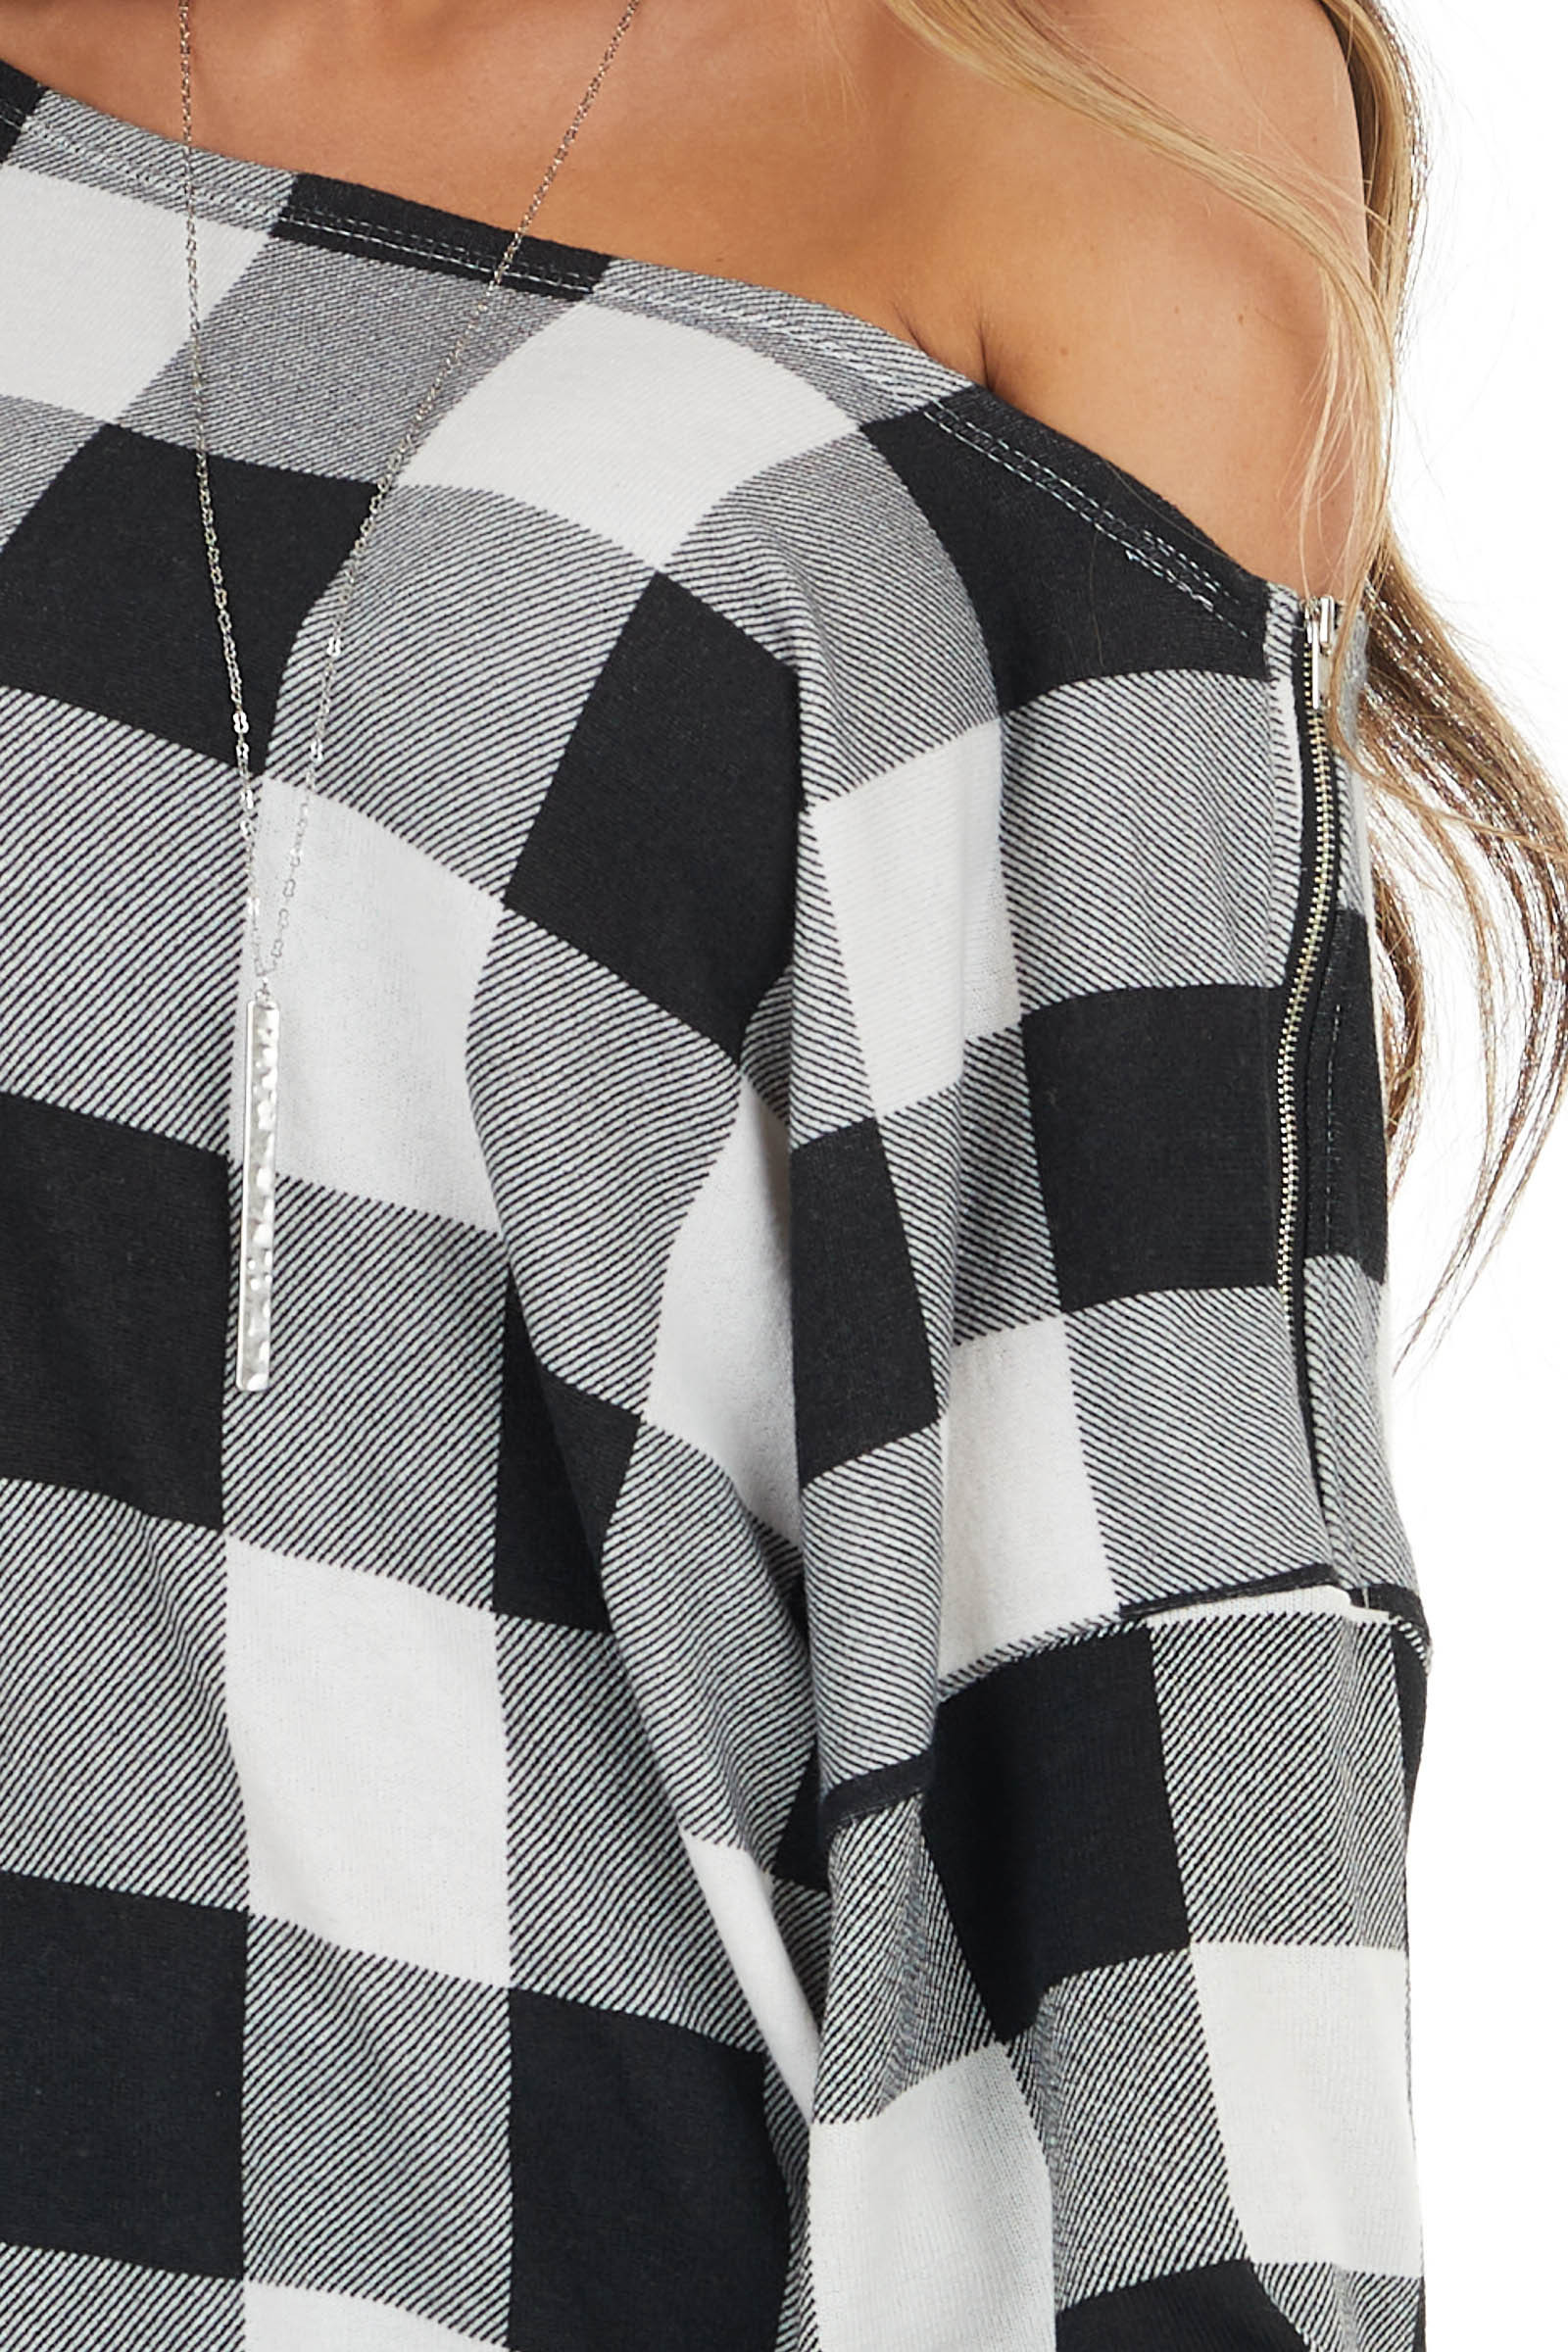 Black and Ivory Buffalo Plaid Top with Zipper Detail